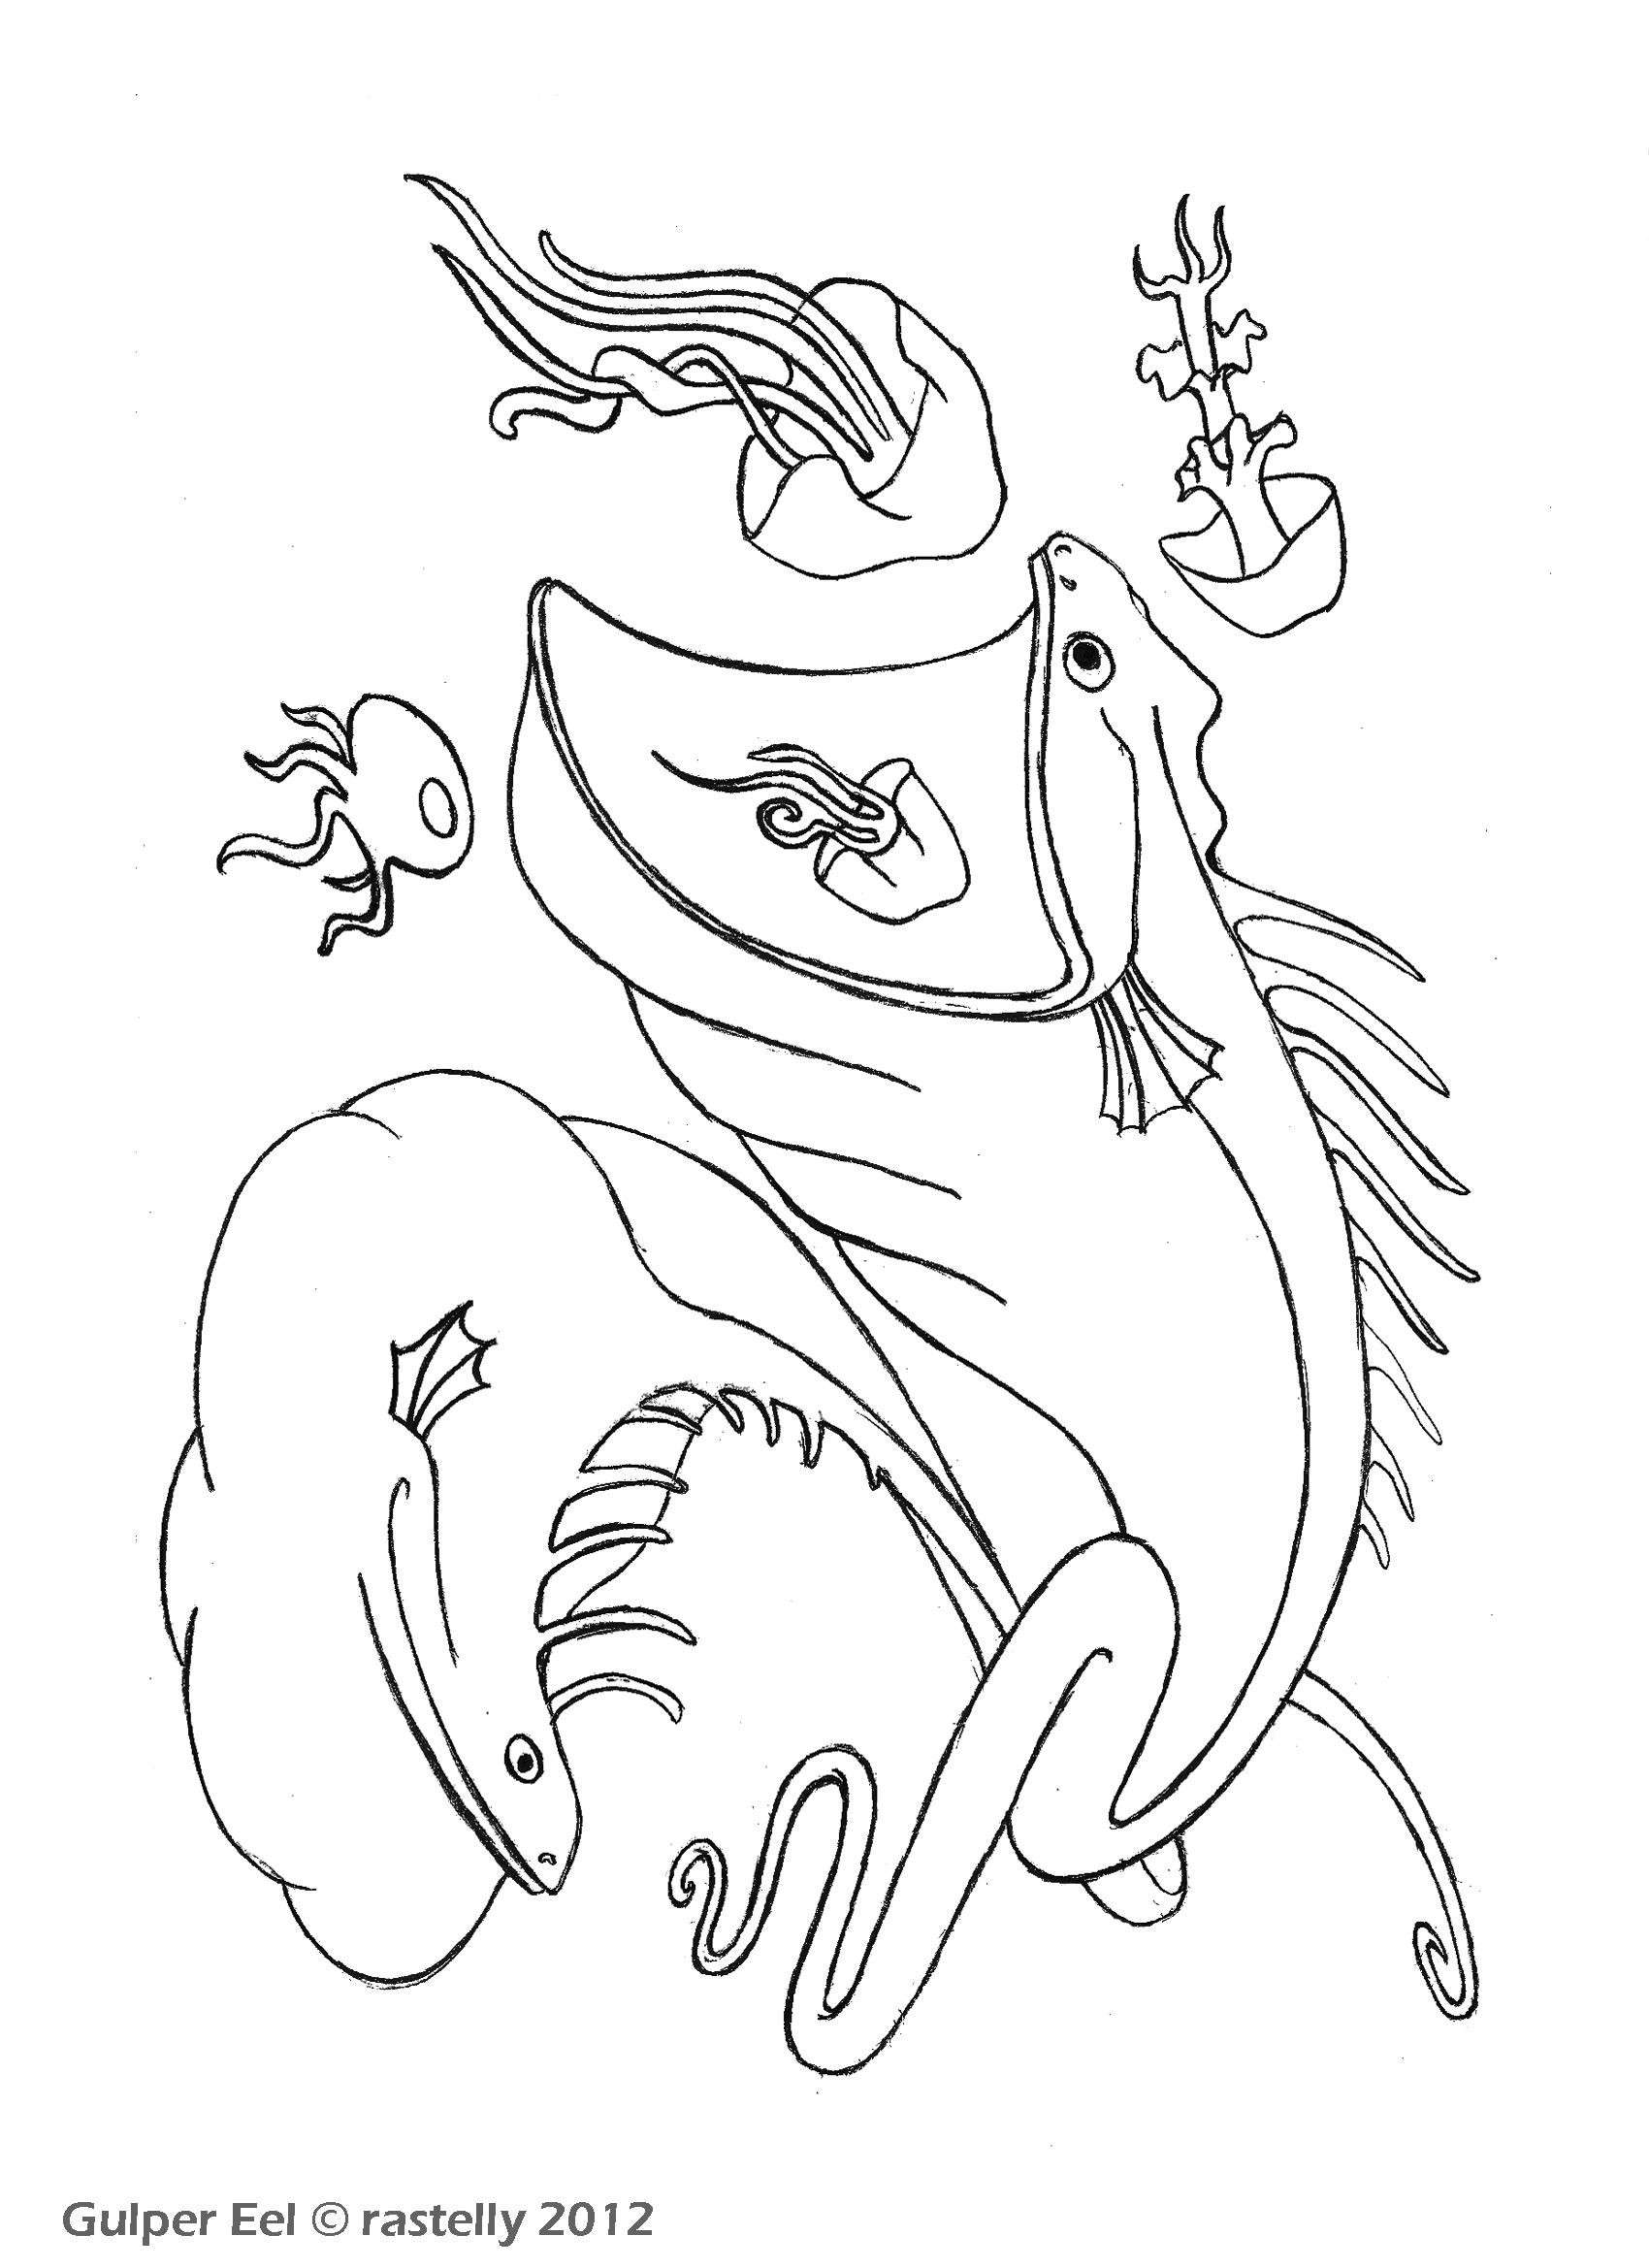 giant squid coloring pages - photo#12